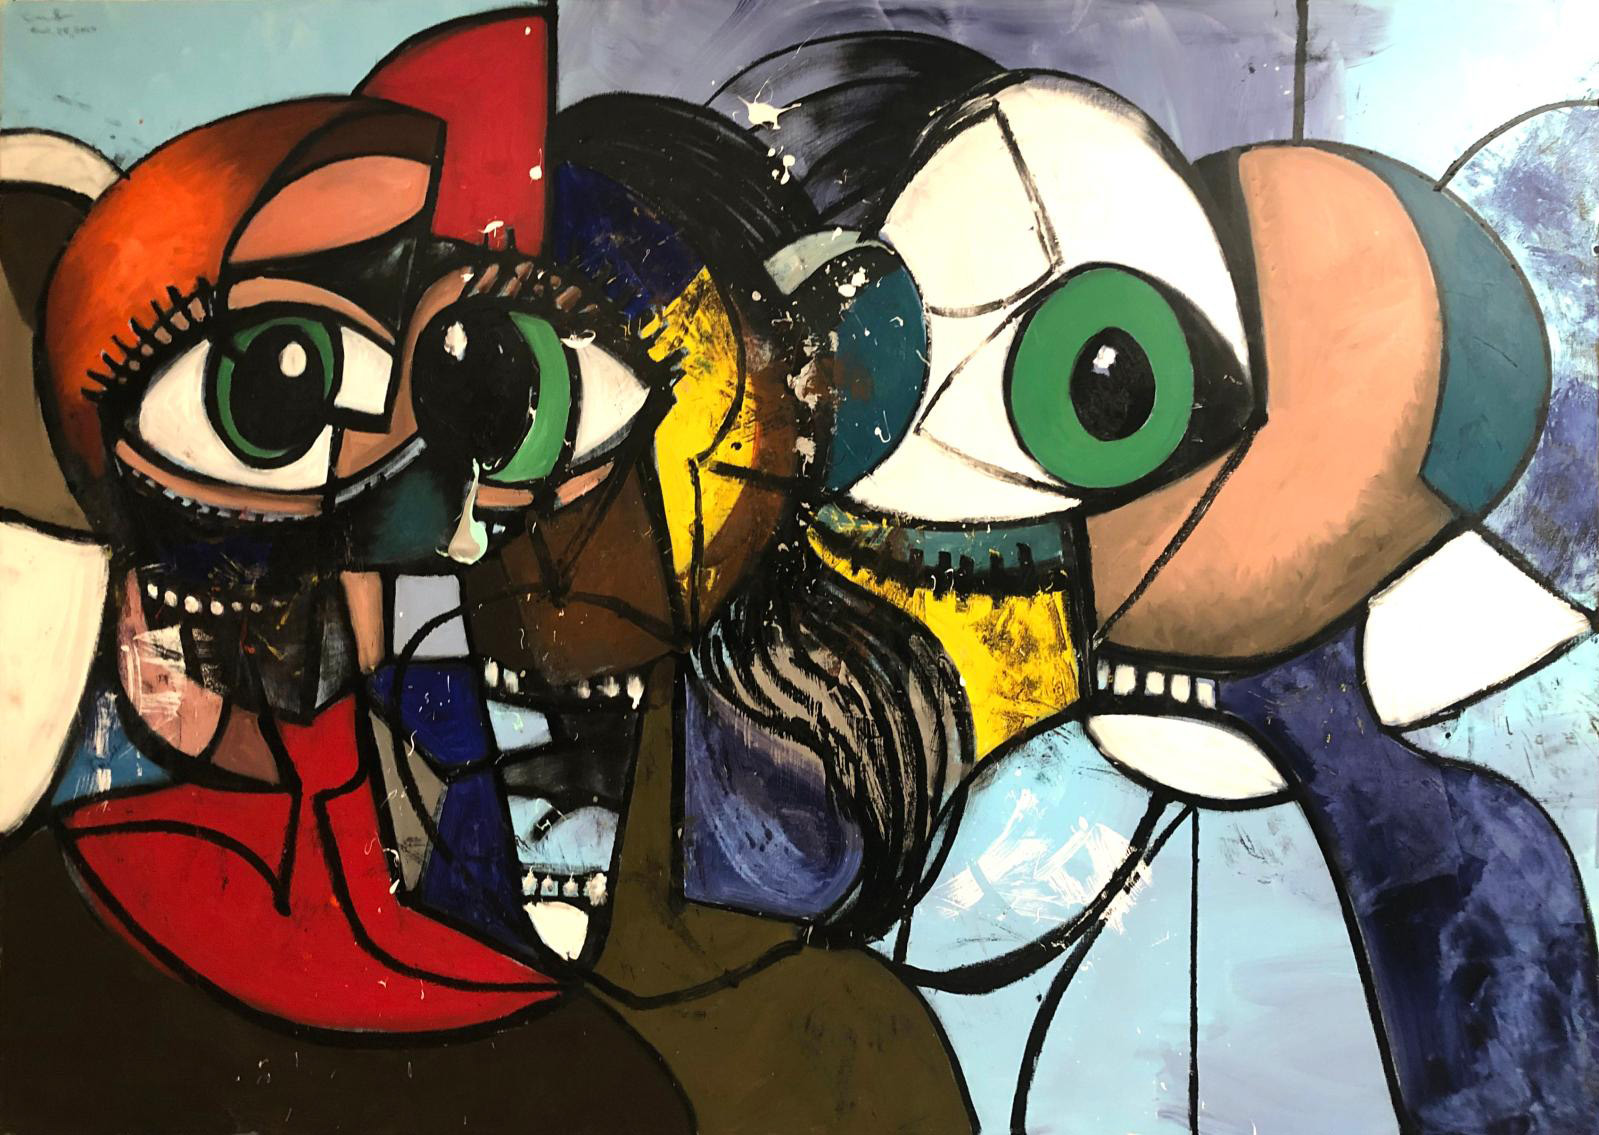 George Condo, Distanced Figures Painting, 2020, oil on canvas. © George Condo, courtesy the artist and Hauser & Wirth